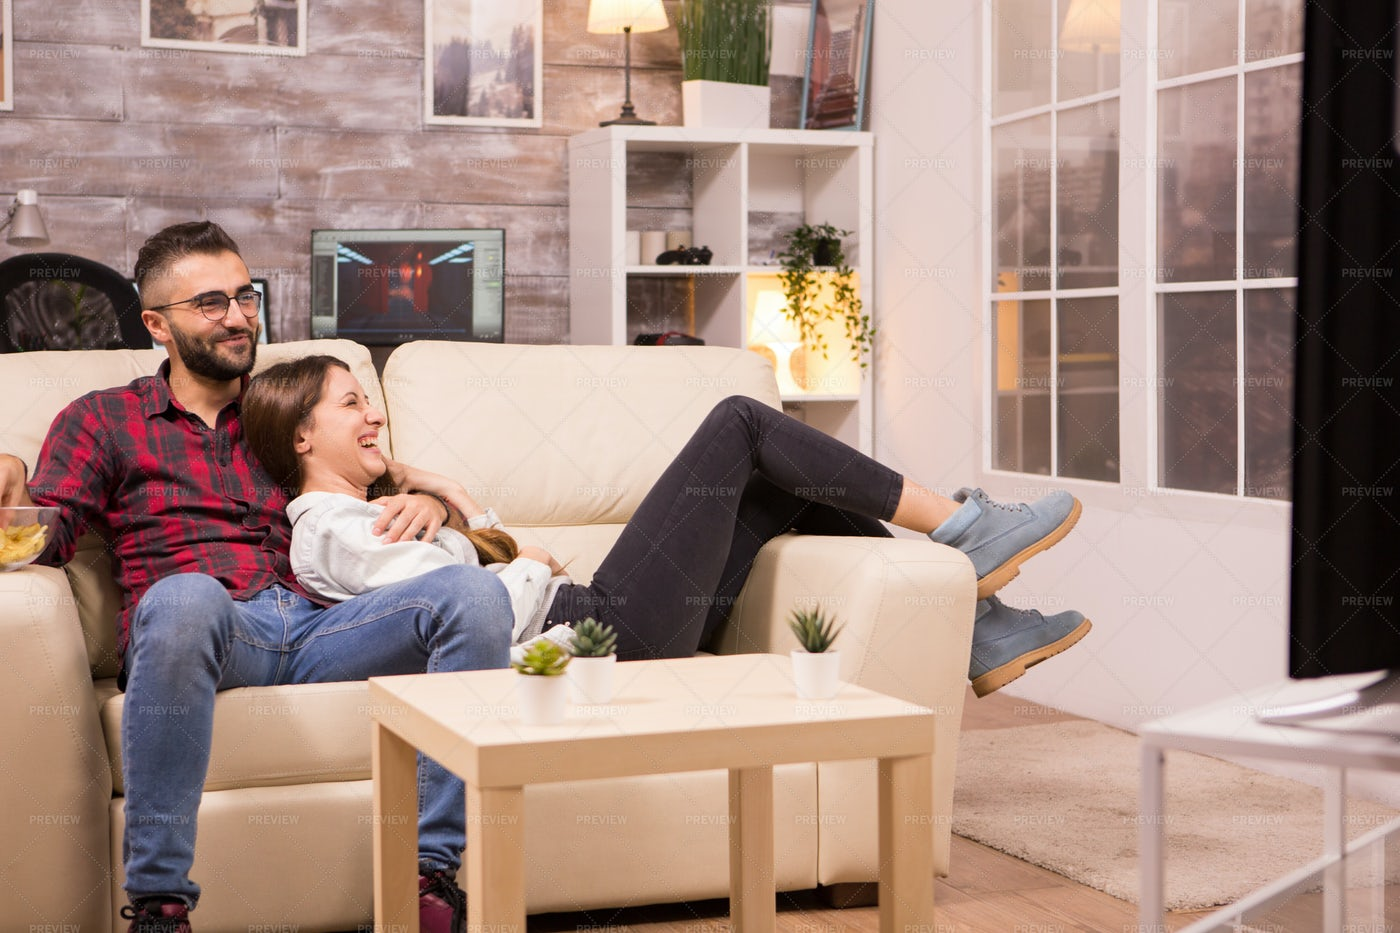 Couple Laughing While Watching A Movie: Stock Photos